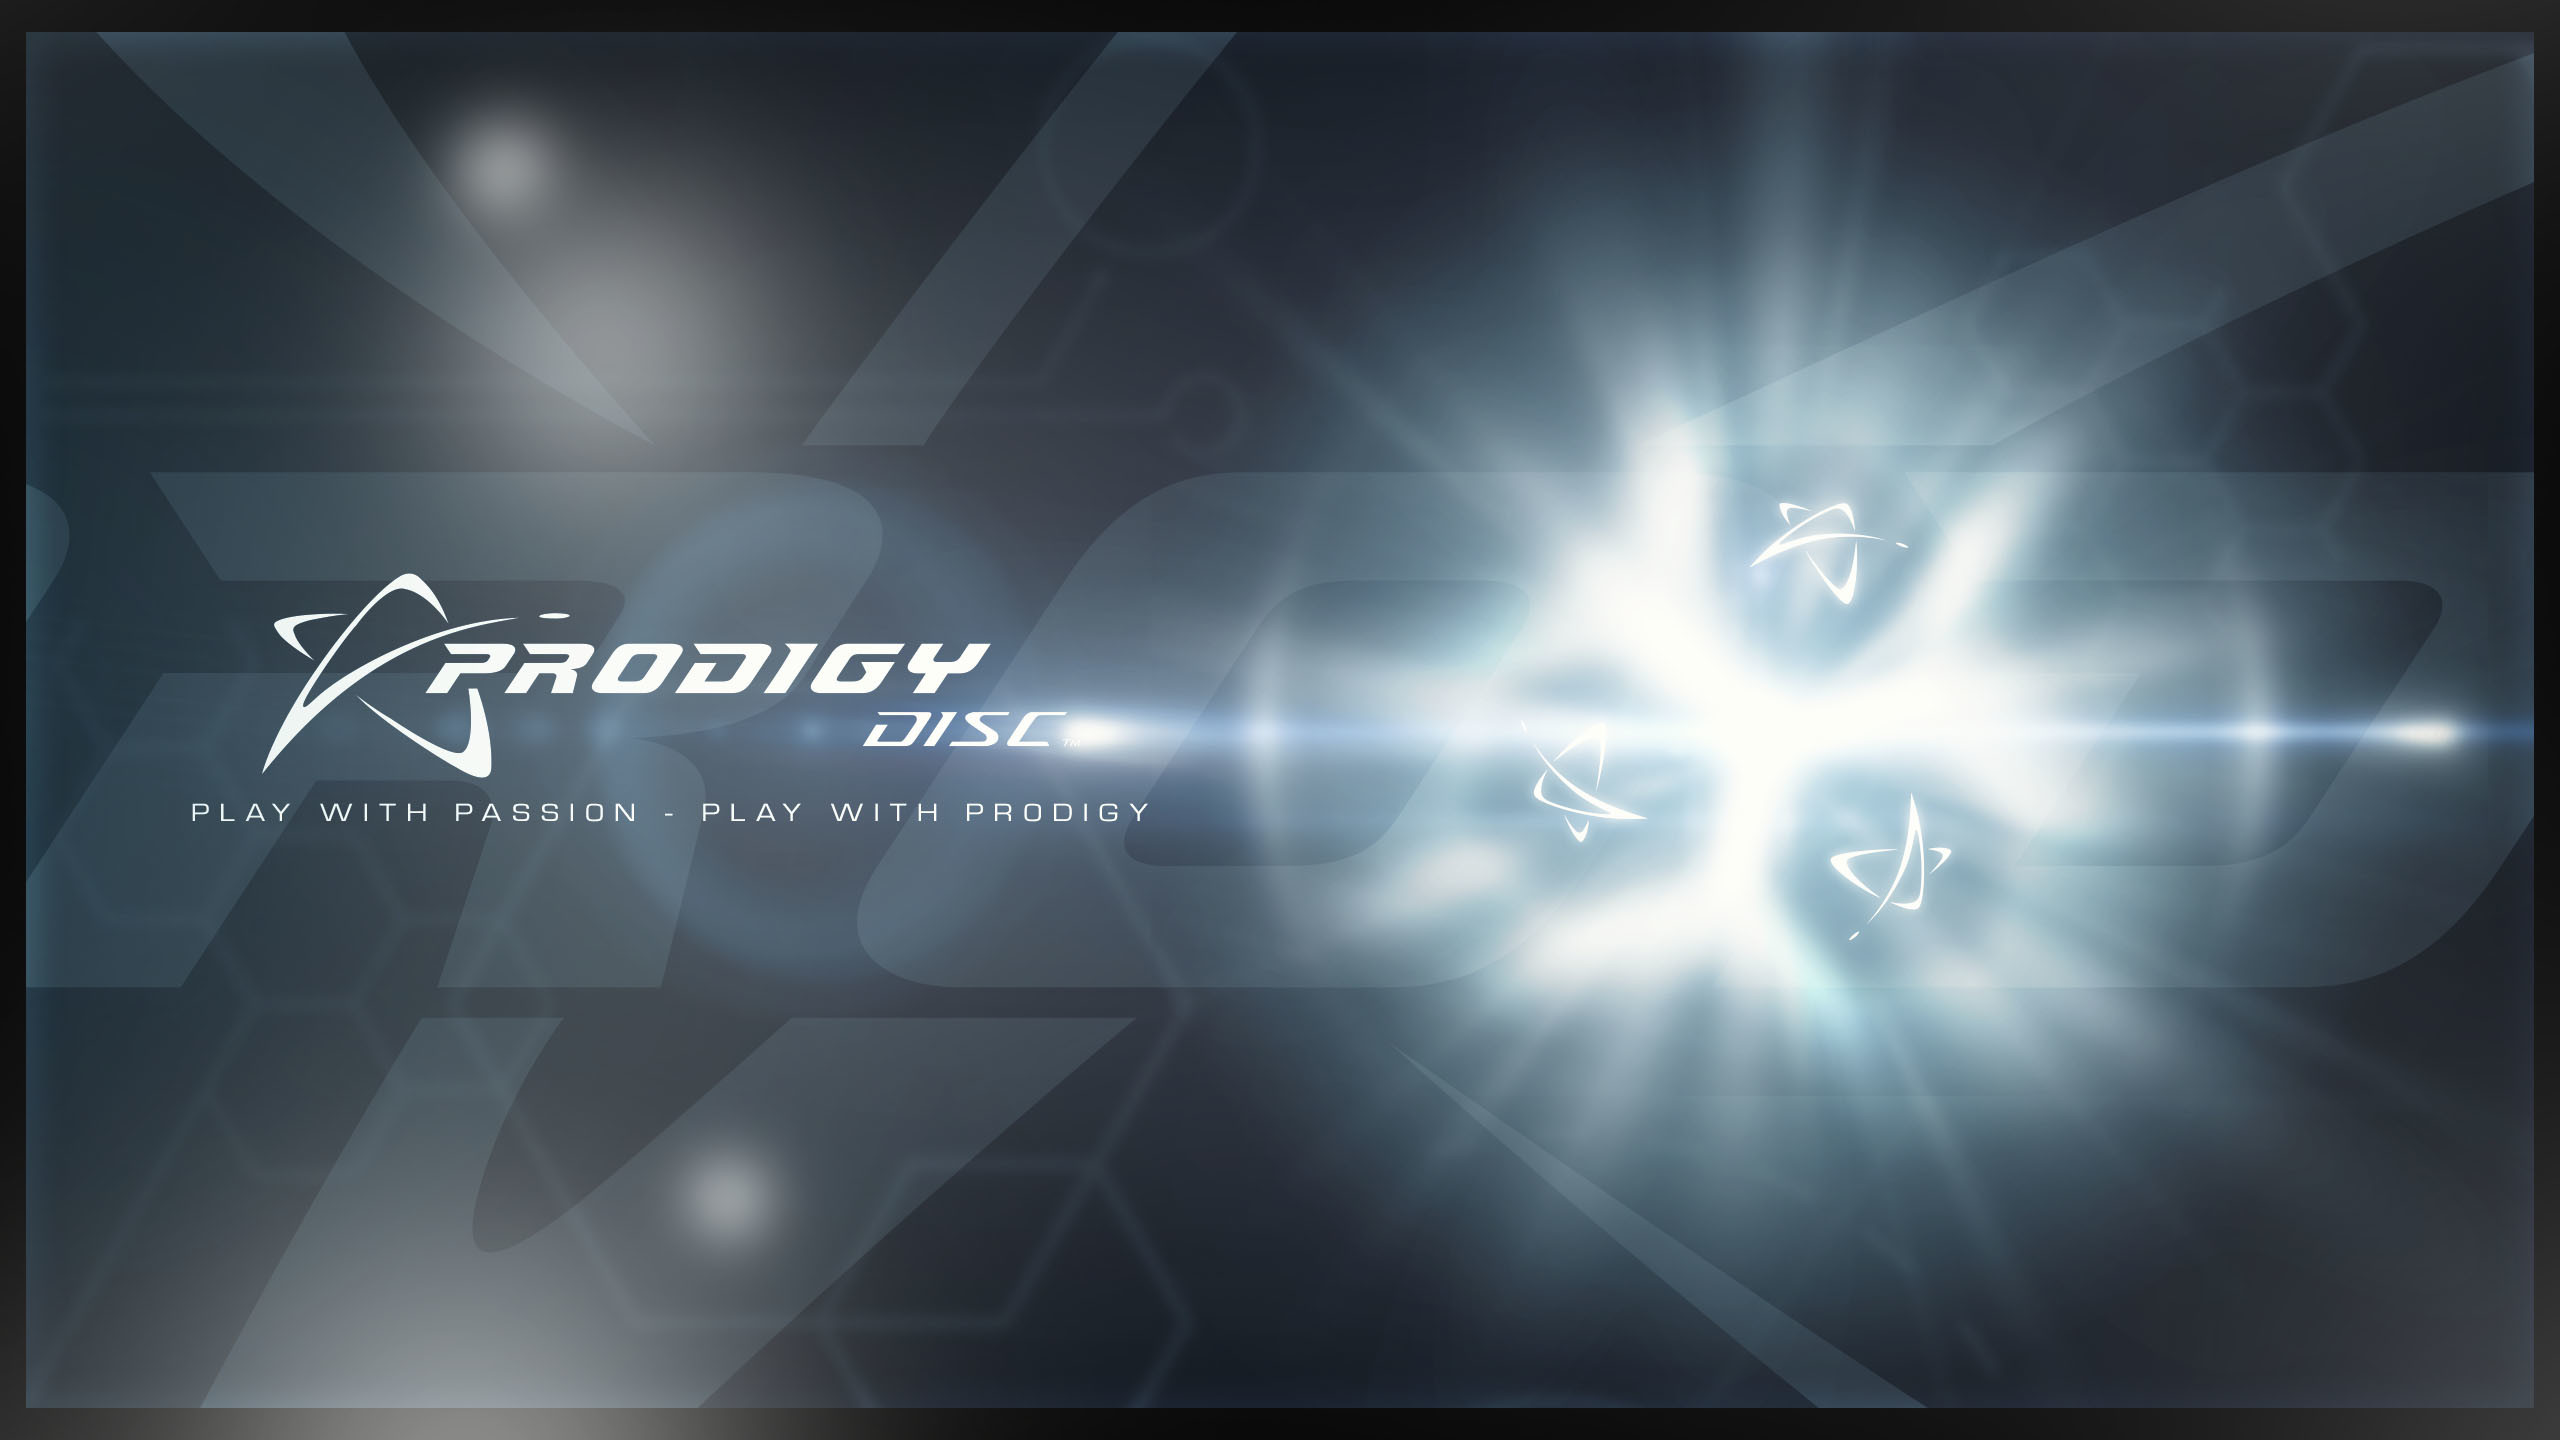 2560x1440 - Prodigy Wallpapers 22